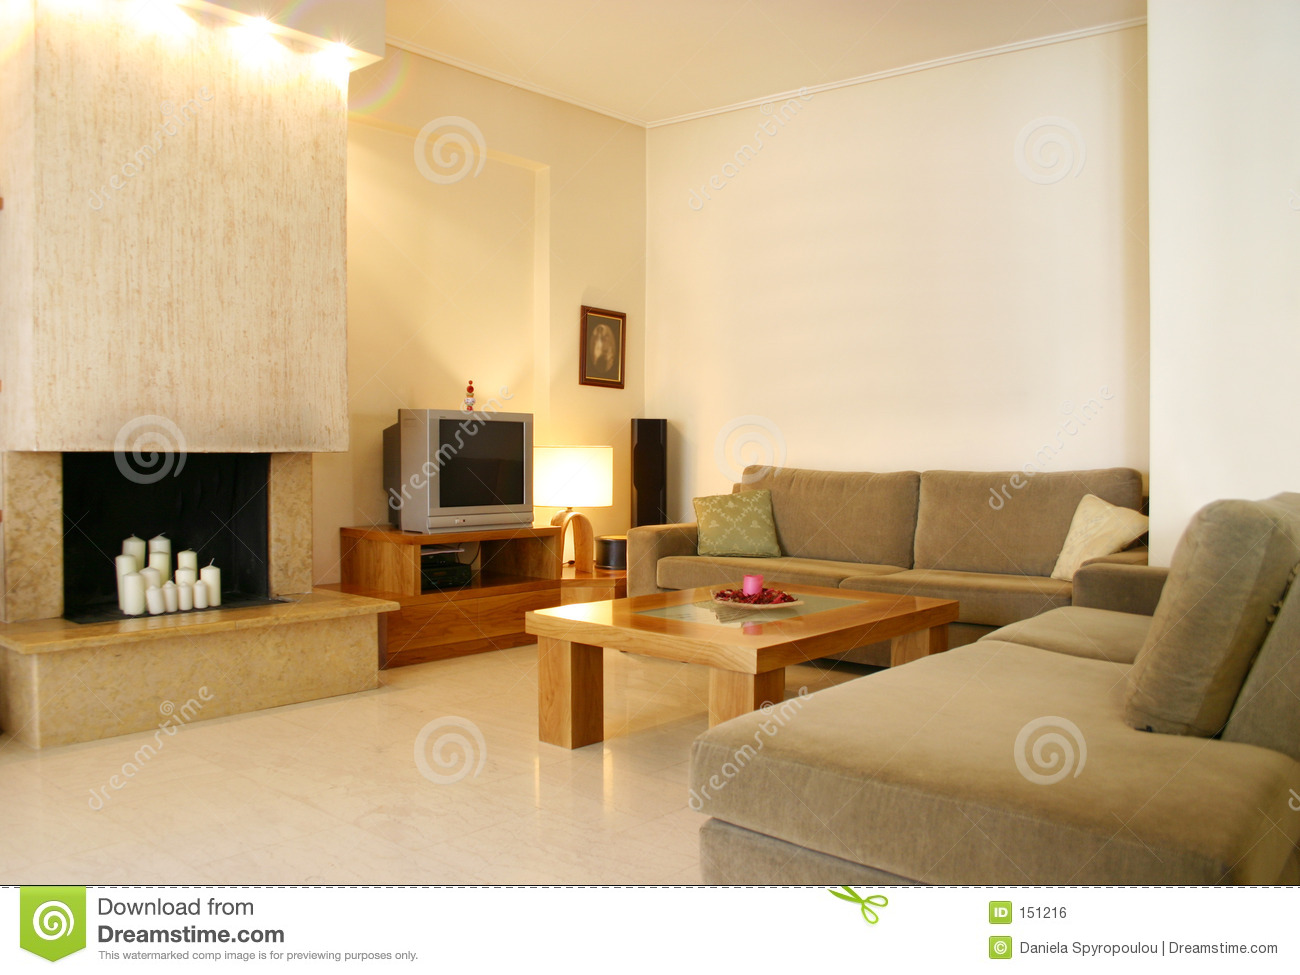 home interior design royalty free stock image image home and interior design - Designer For Homes